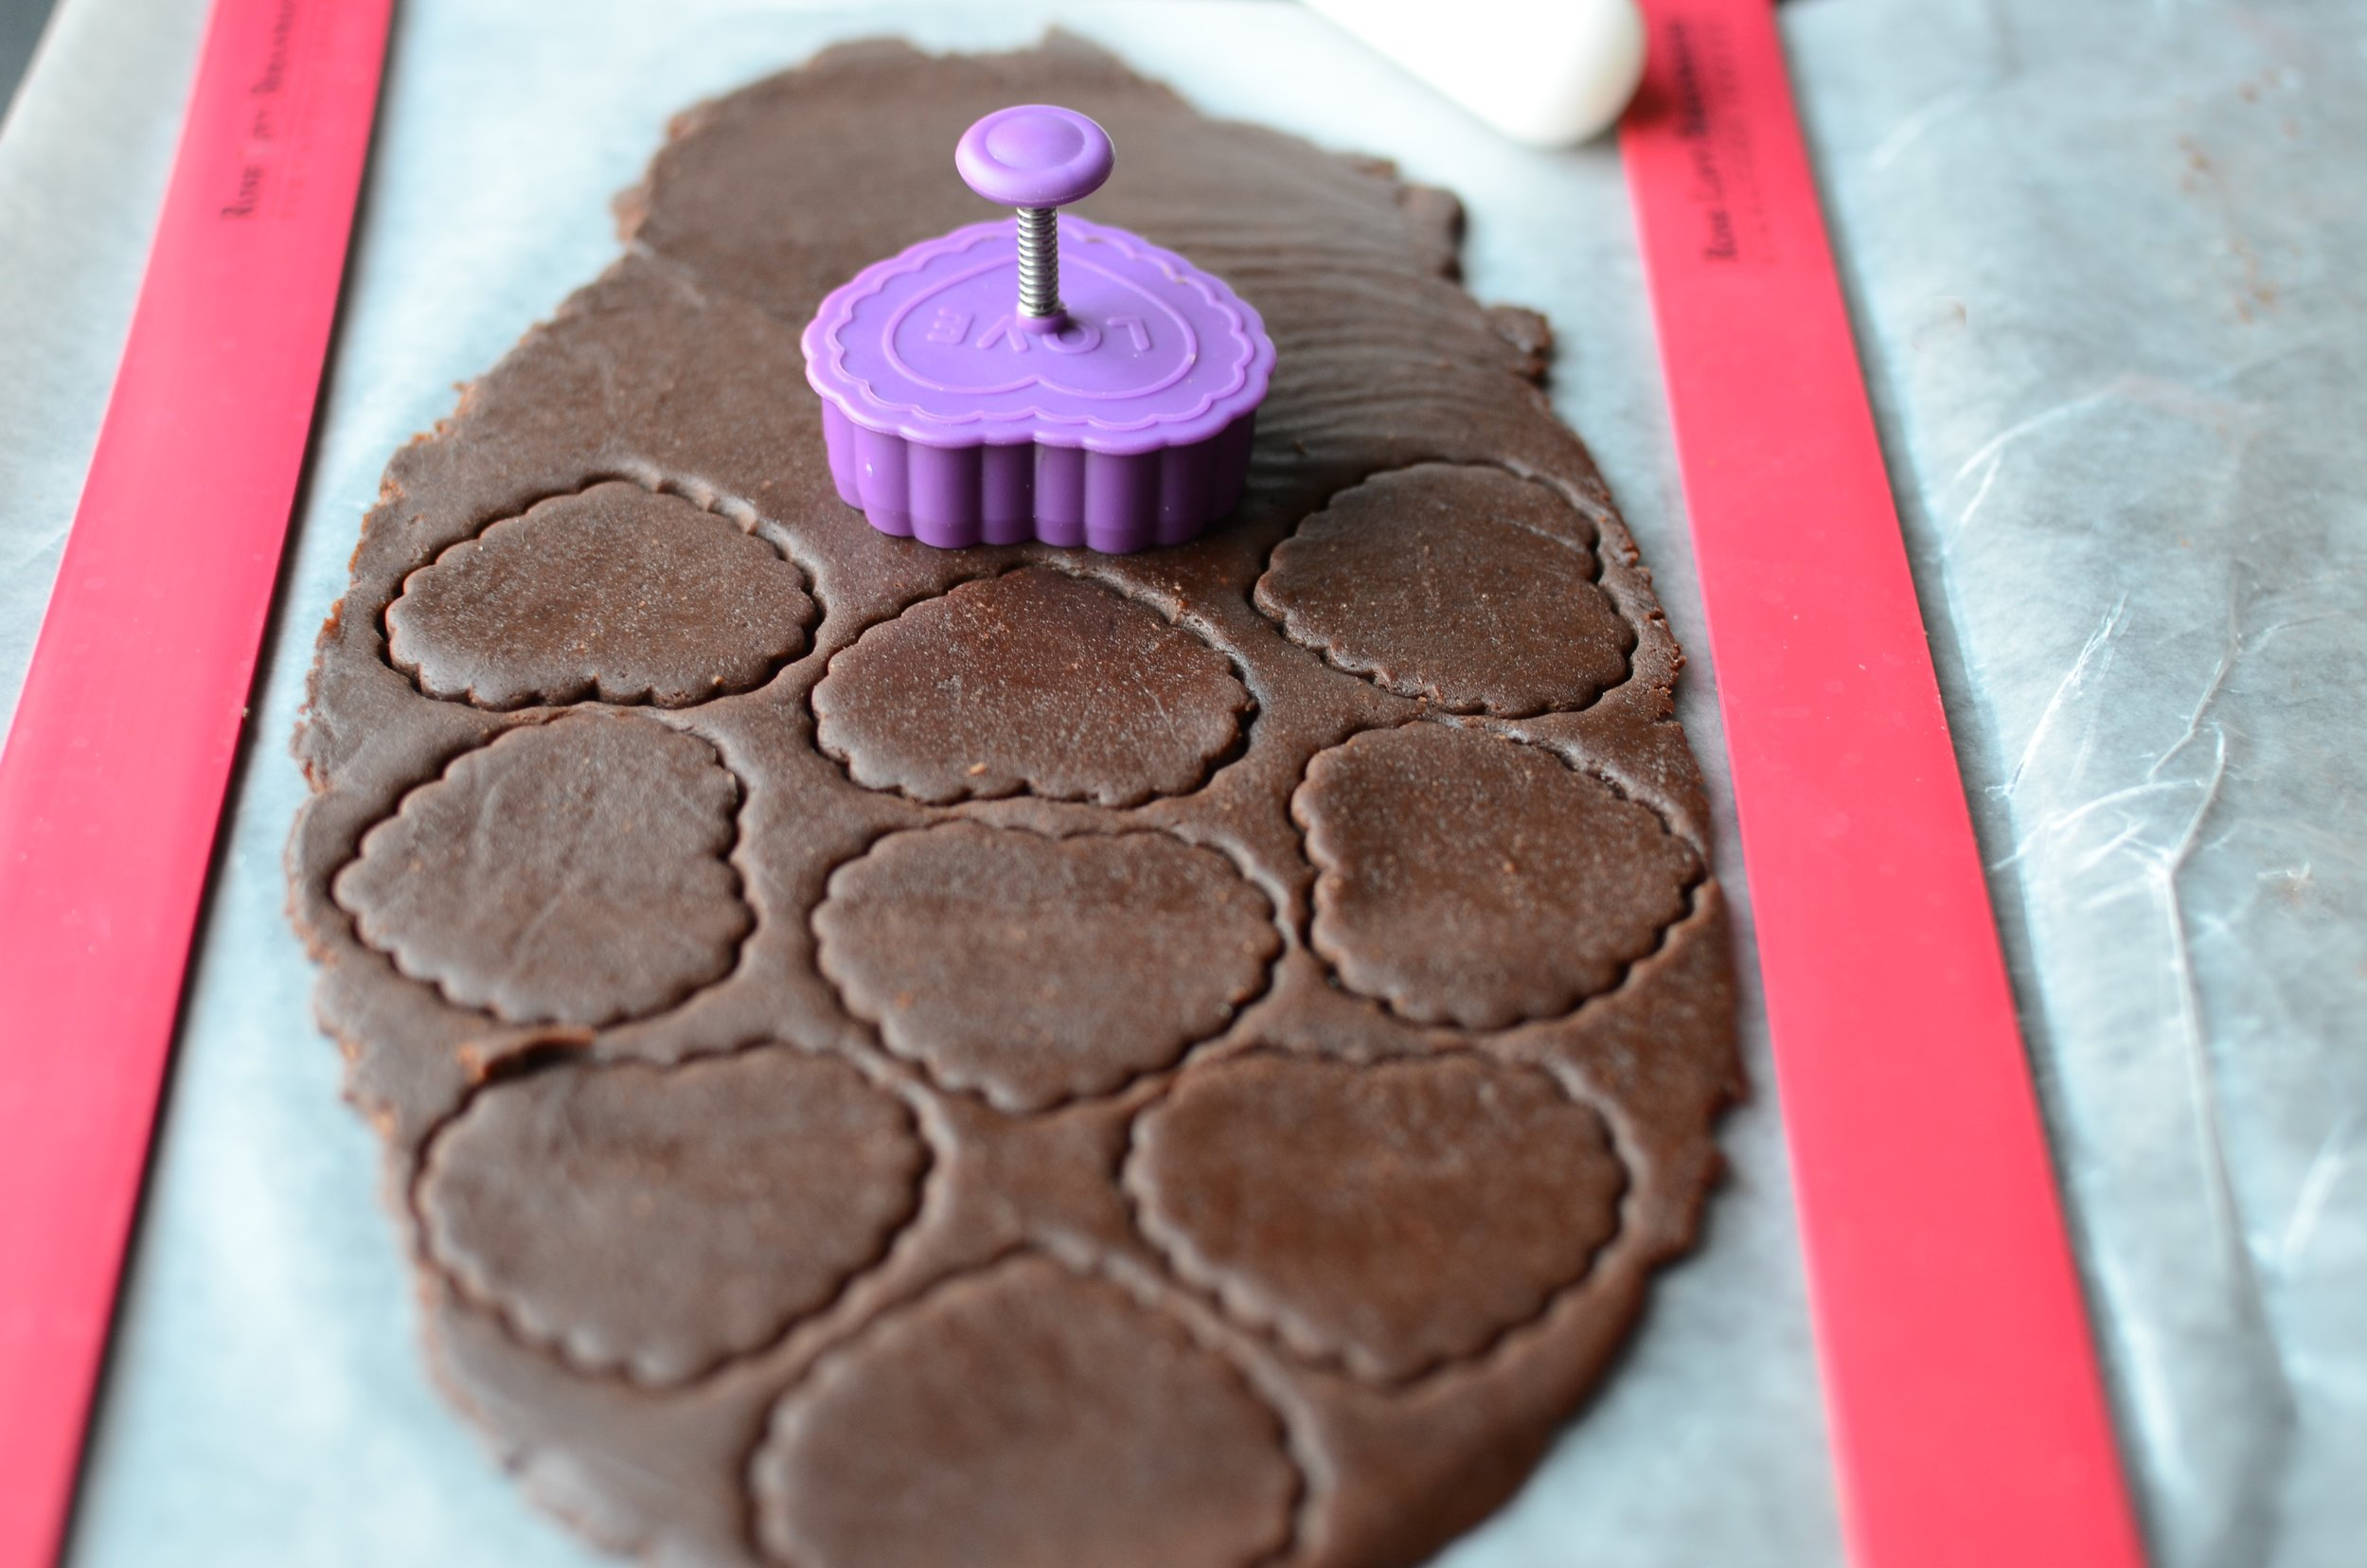 Check out this clever way to use fondant plunger cutters.